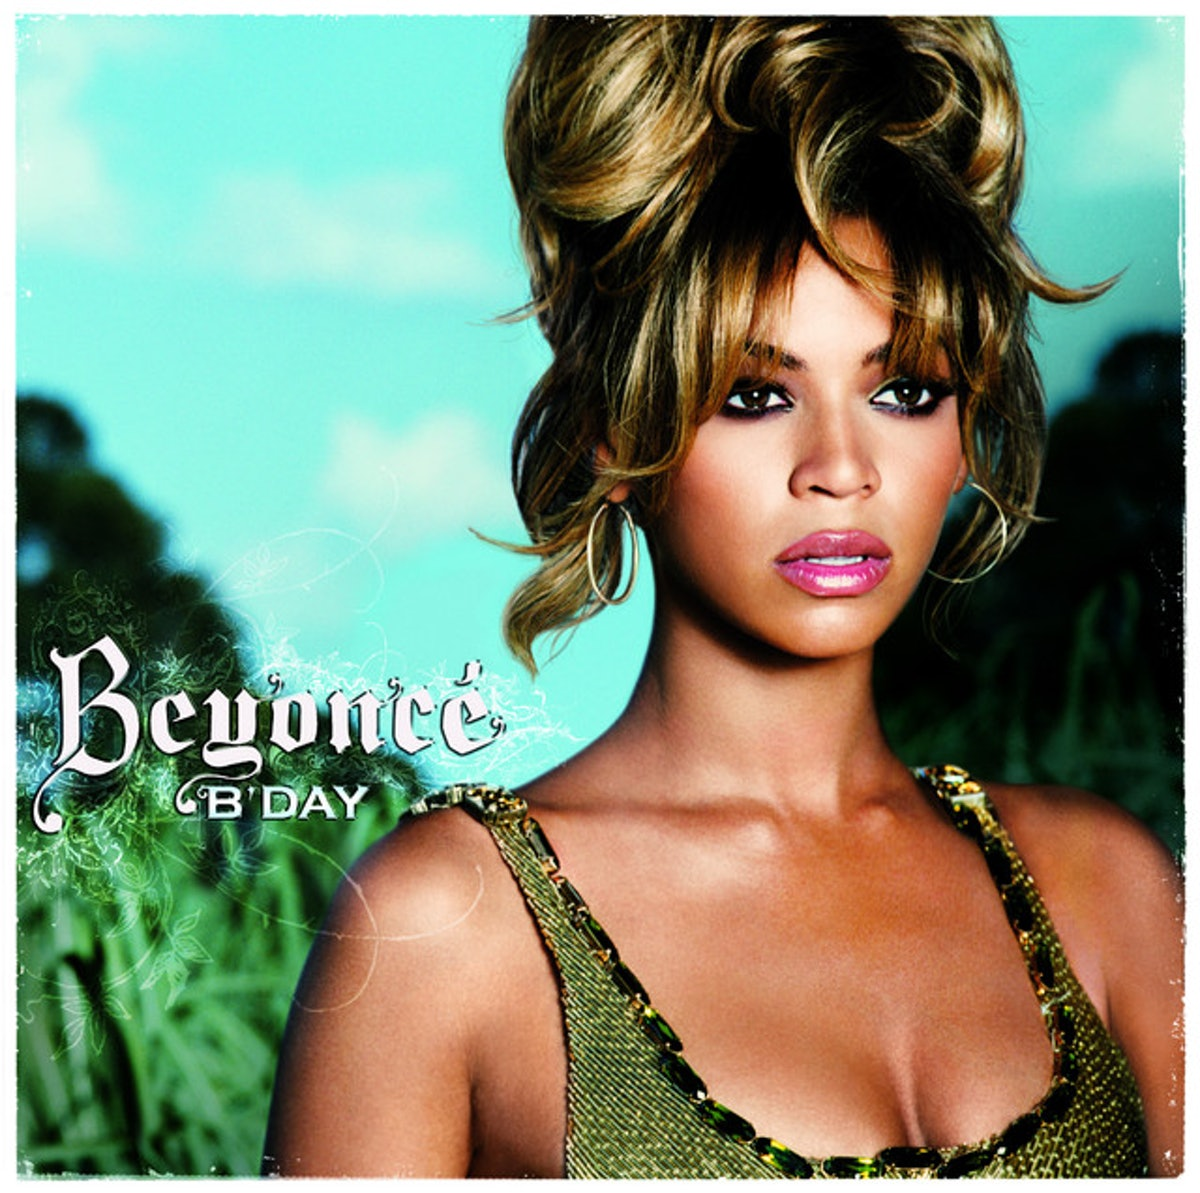 Beyonce's B'Day album cover